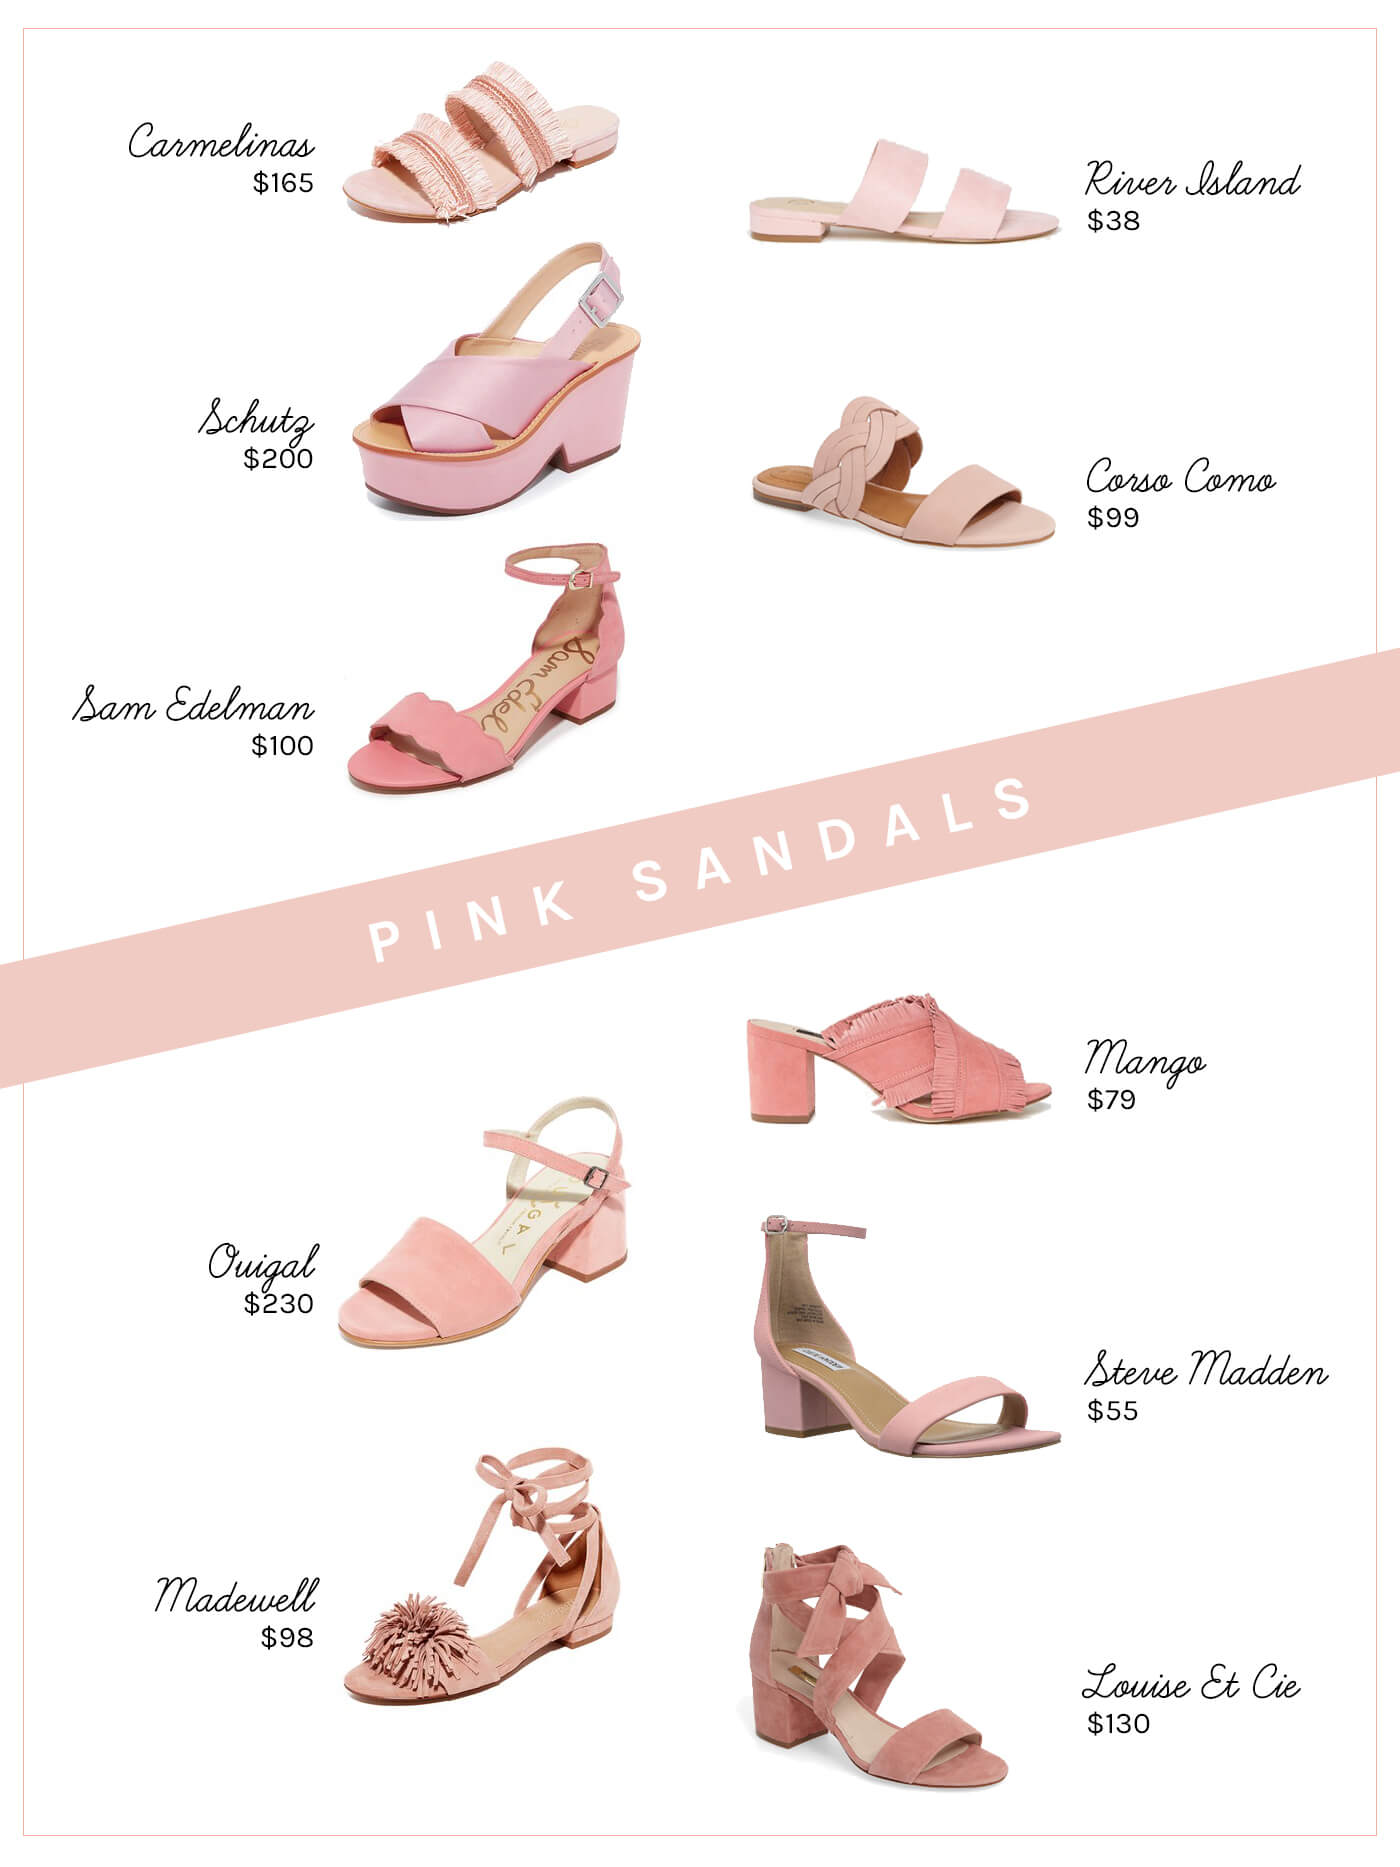 Think Pink: 10 Pink Sandals for Spring and Summer - Keiko Lynn